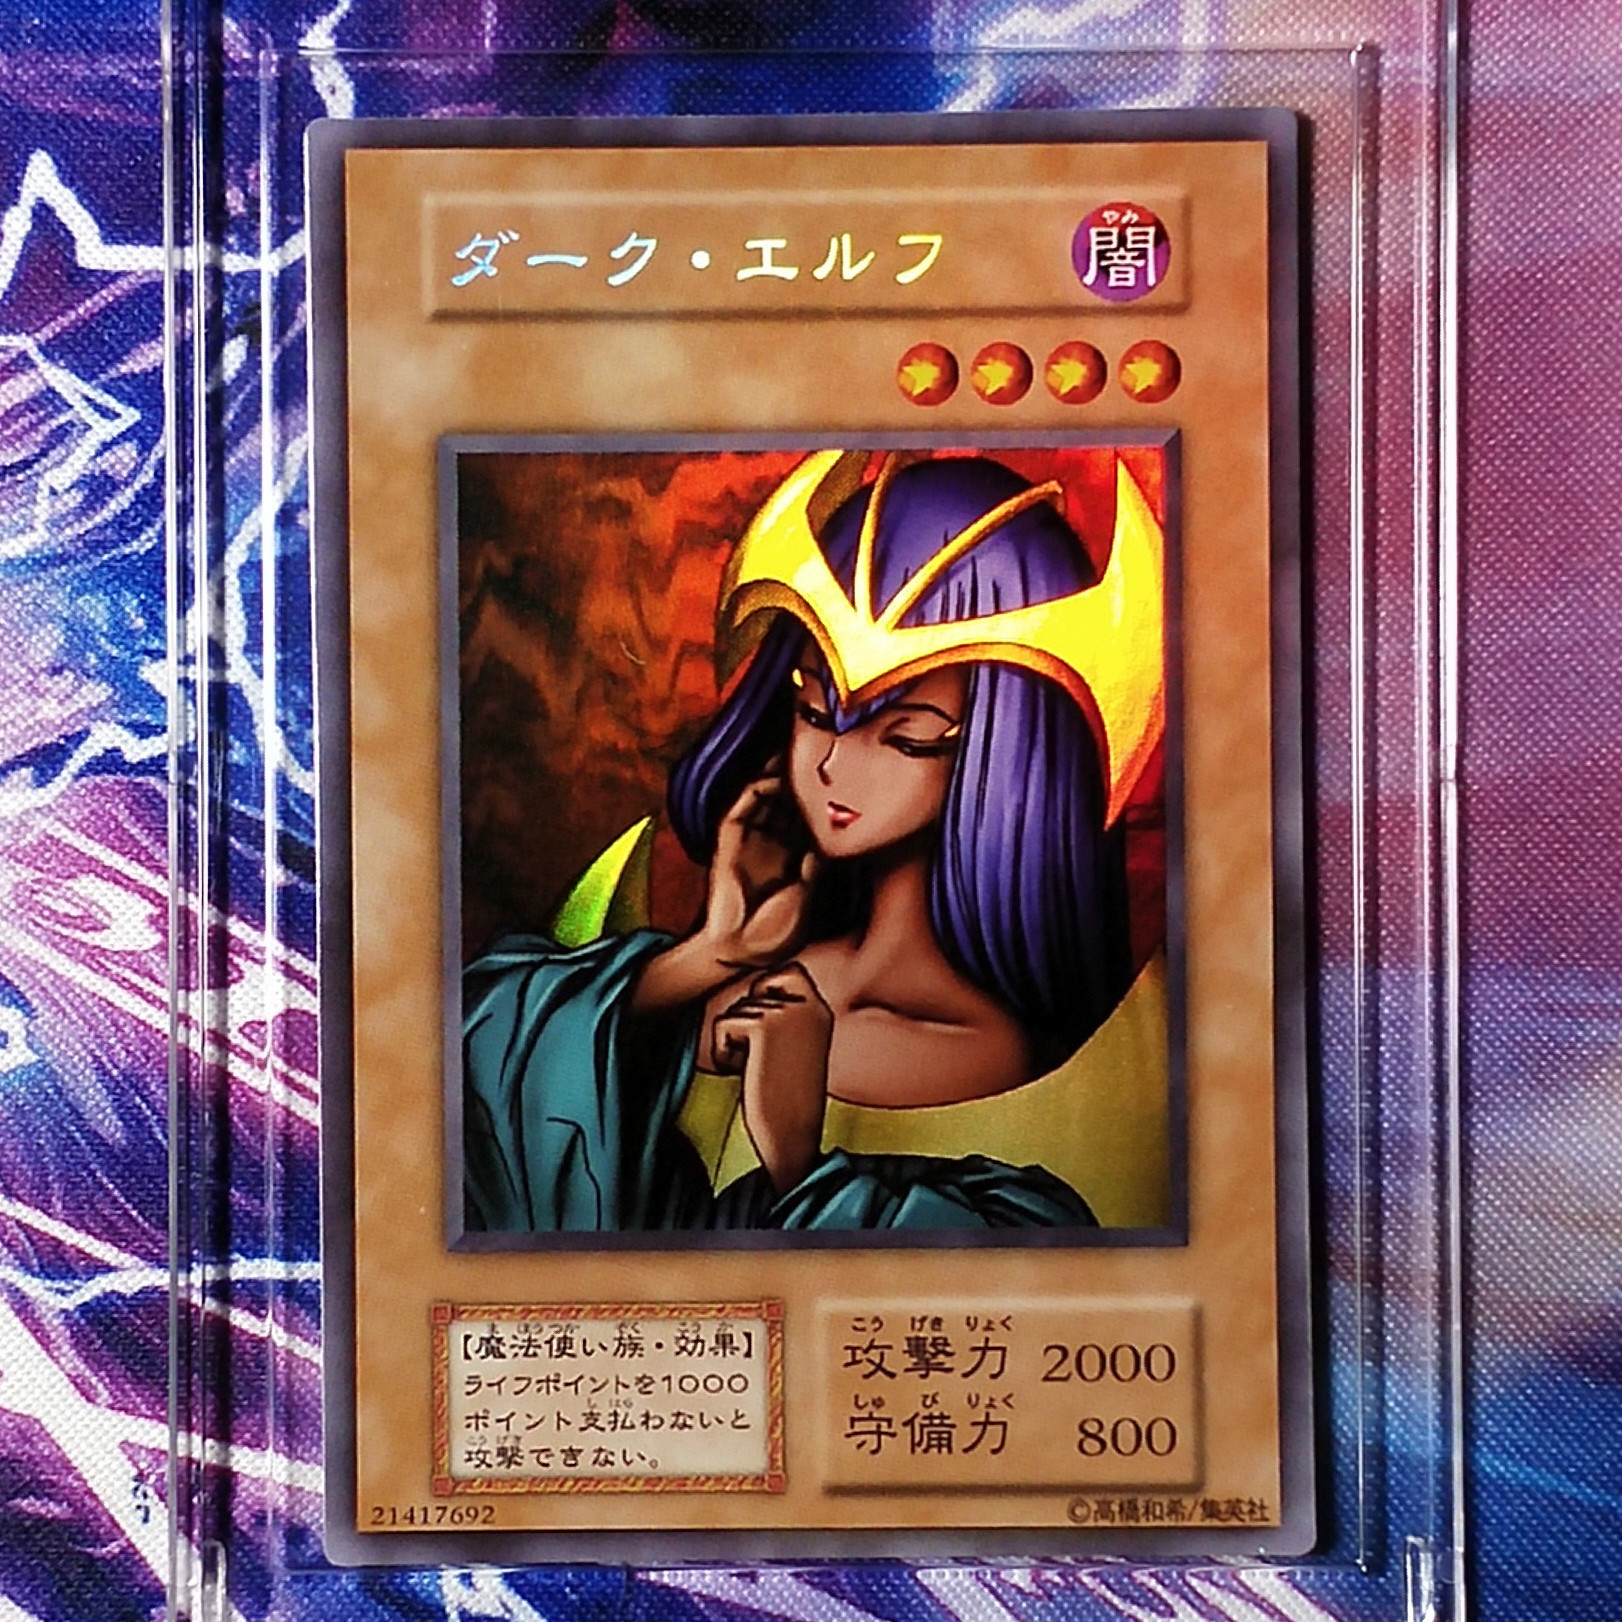 Yu Gi Oh Dark Elf DIY Colorful Toys Hobbies Hobby Collectibles Game Collection Anime Cards